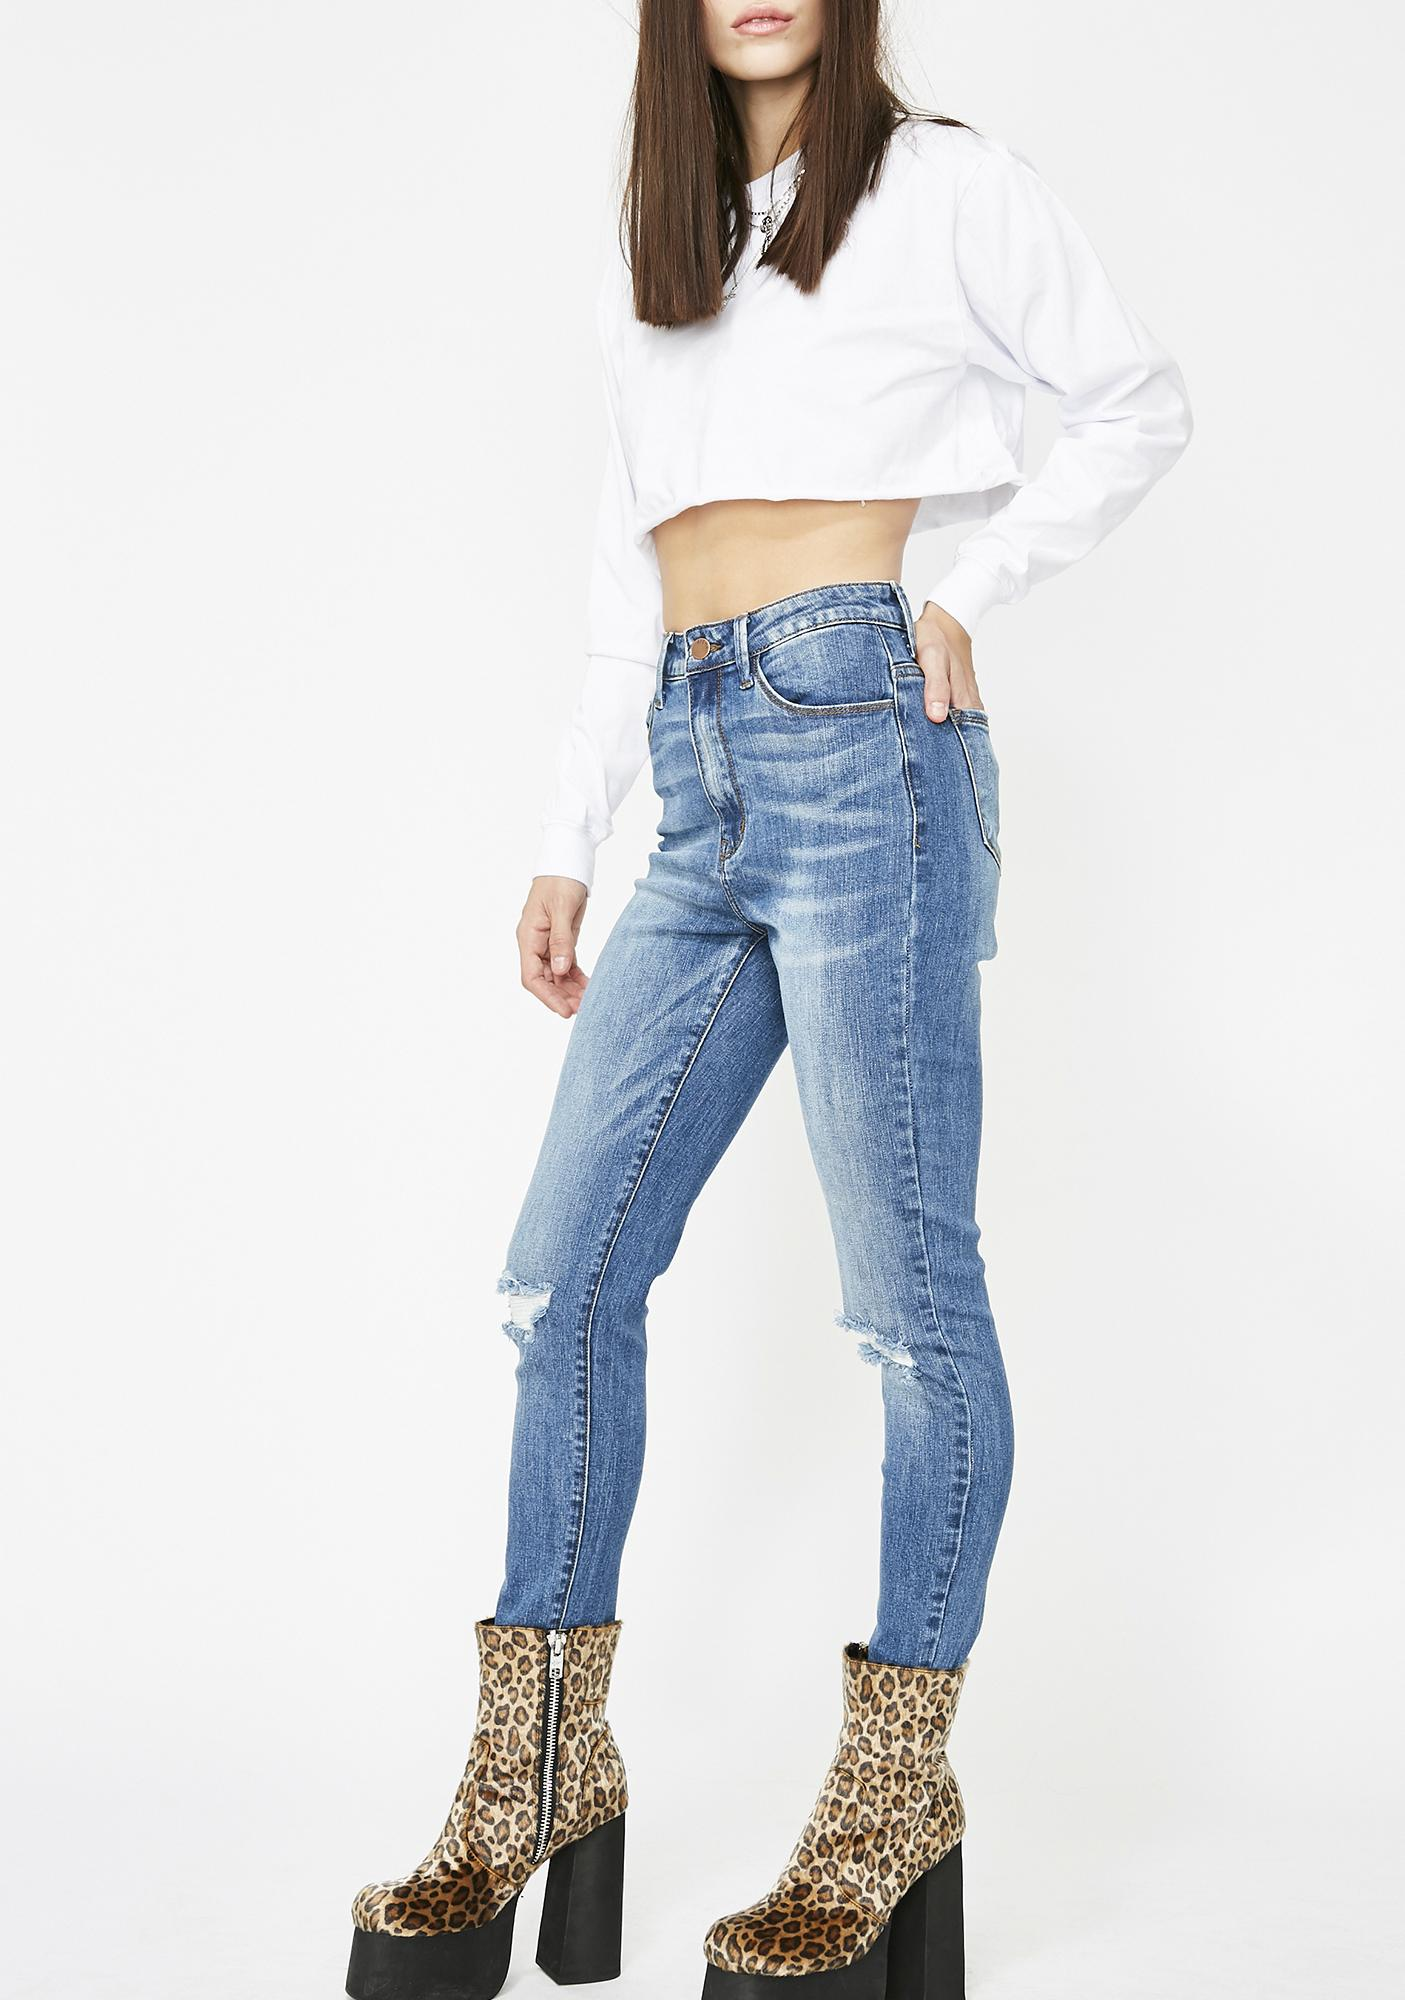 Damsel In Distressed Jeans